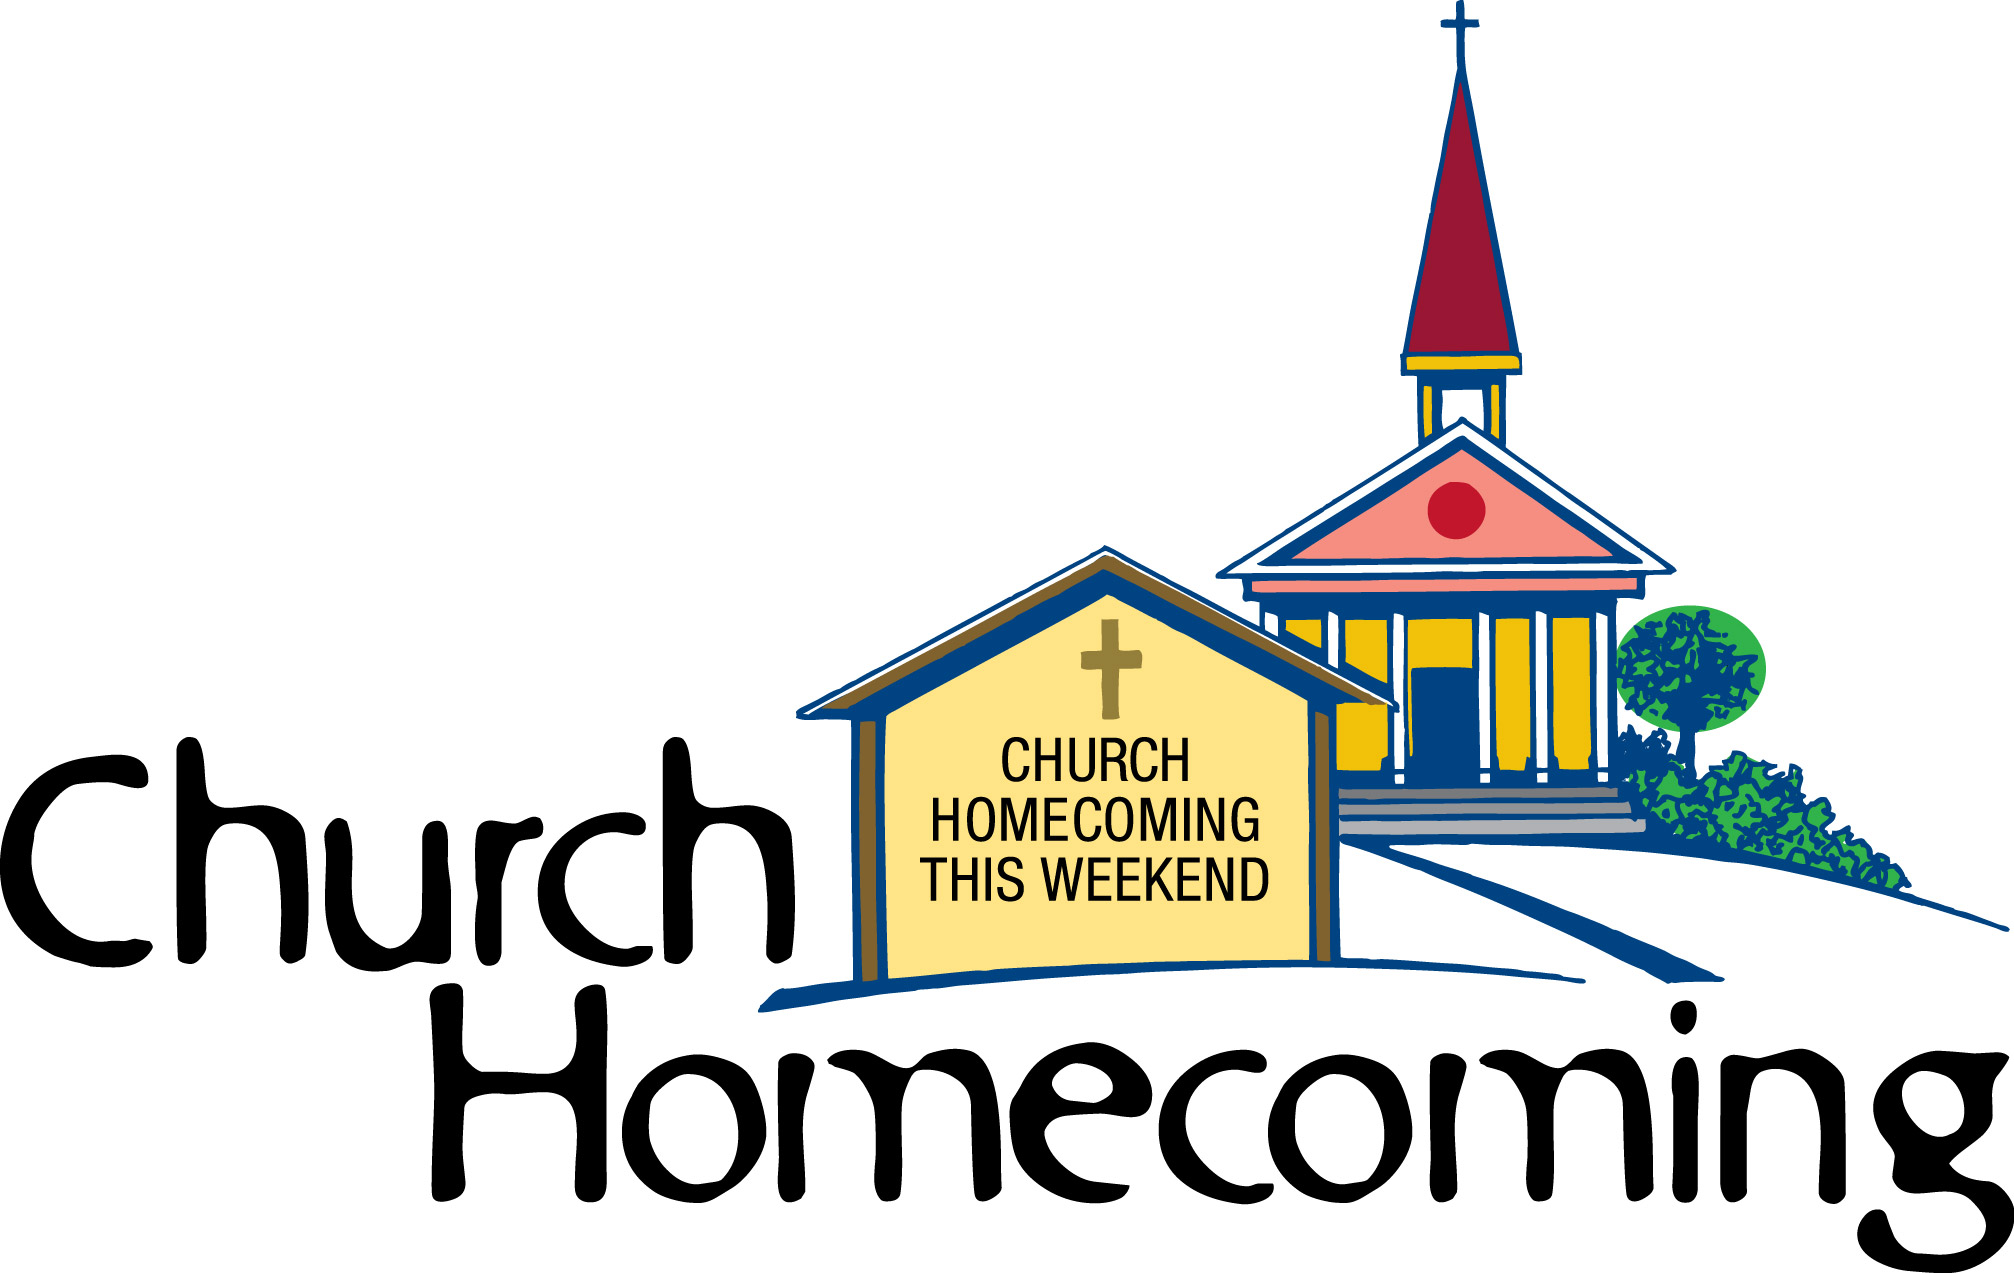 homecoming-clipart-homecoming-jpg-K5YNc4-clipart